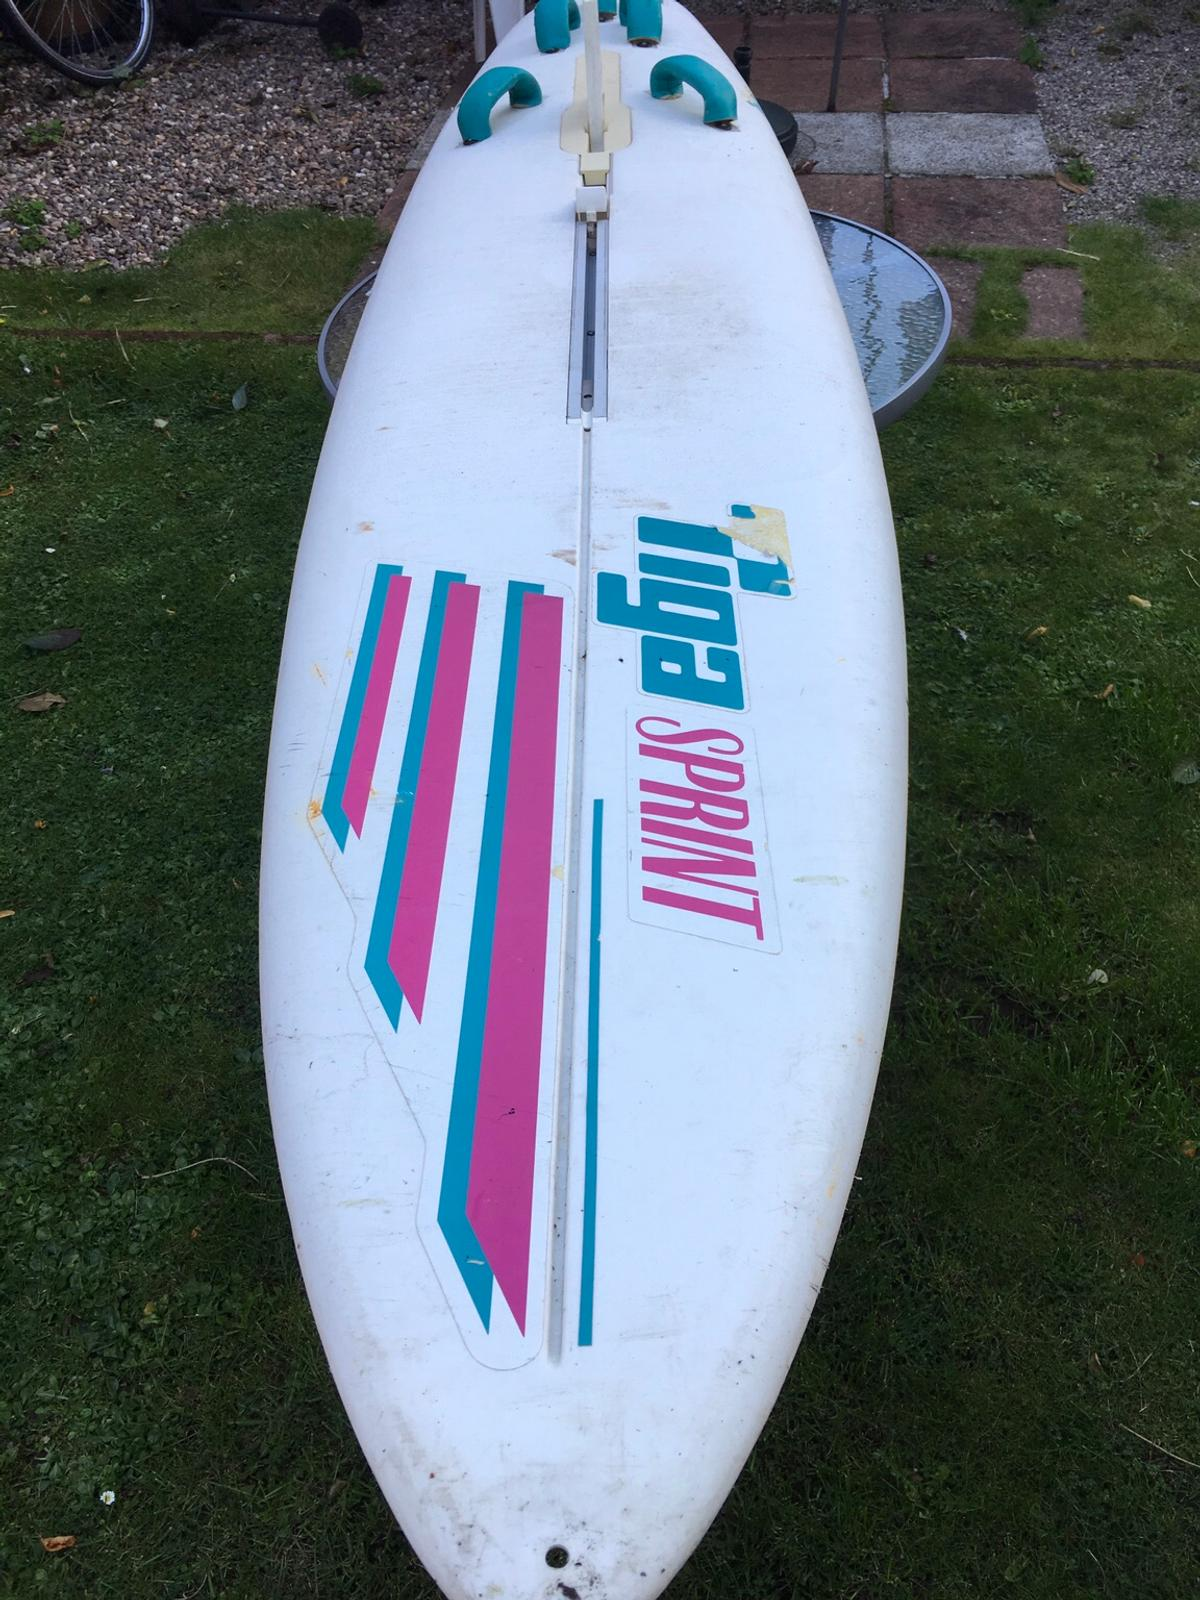 Tiga sprint wind surf board and sail in DL3 Faverdale for £20 00 for